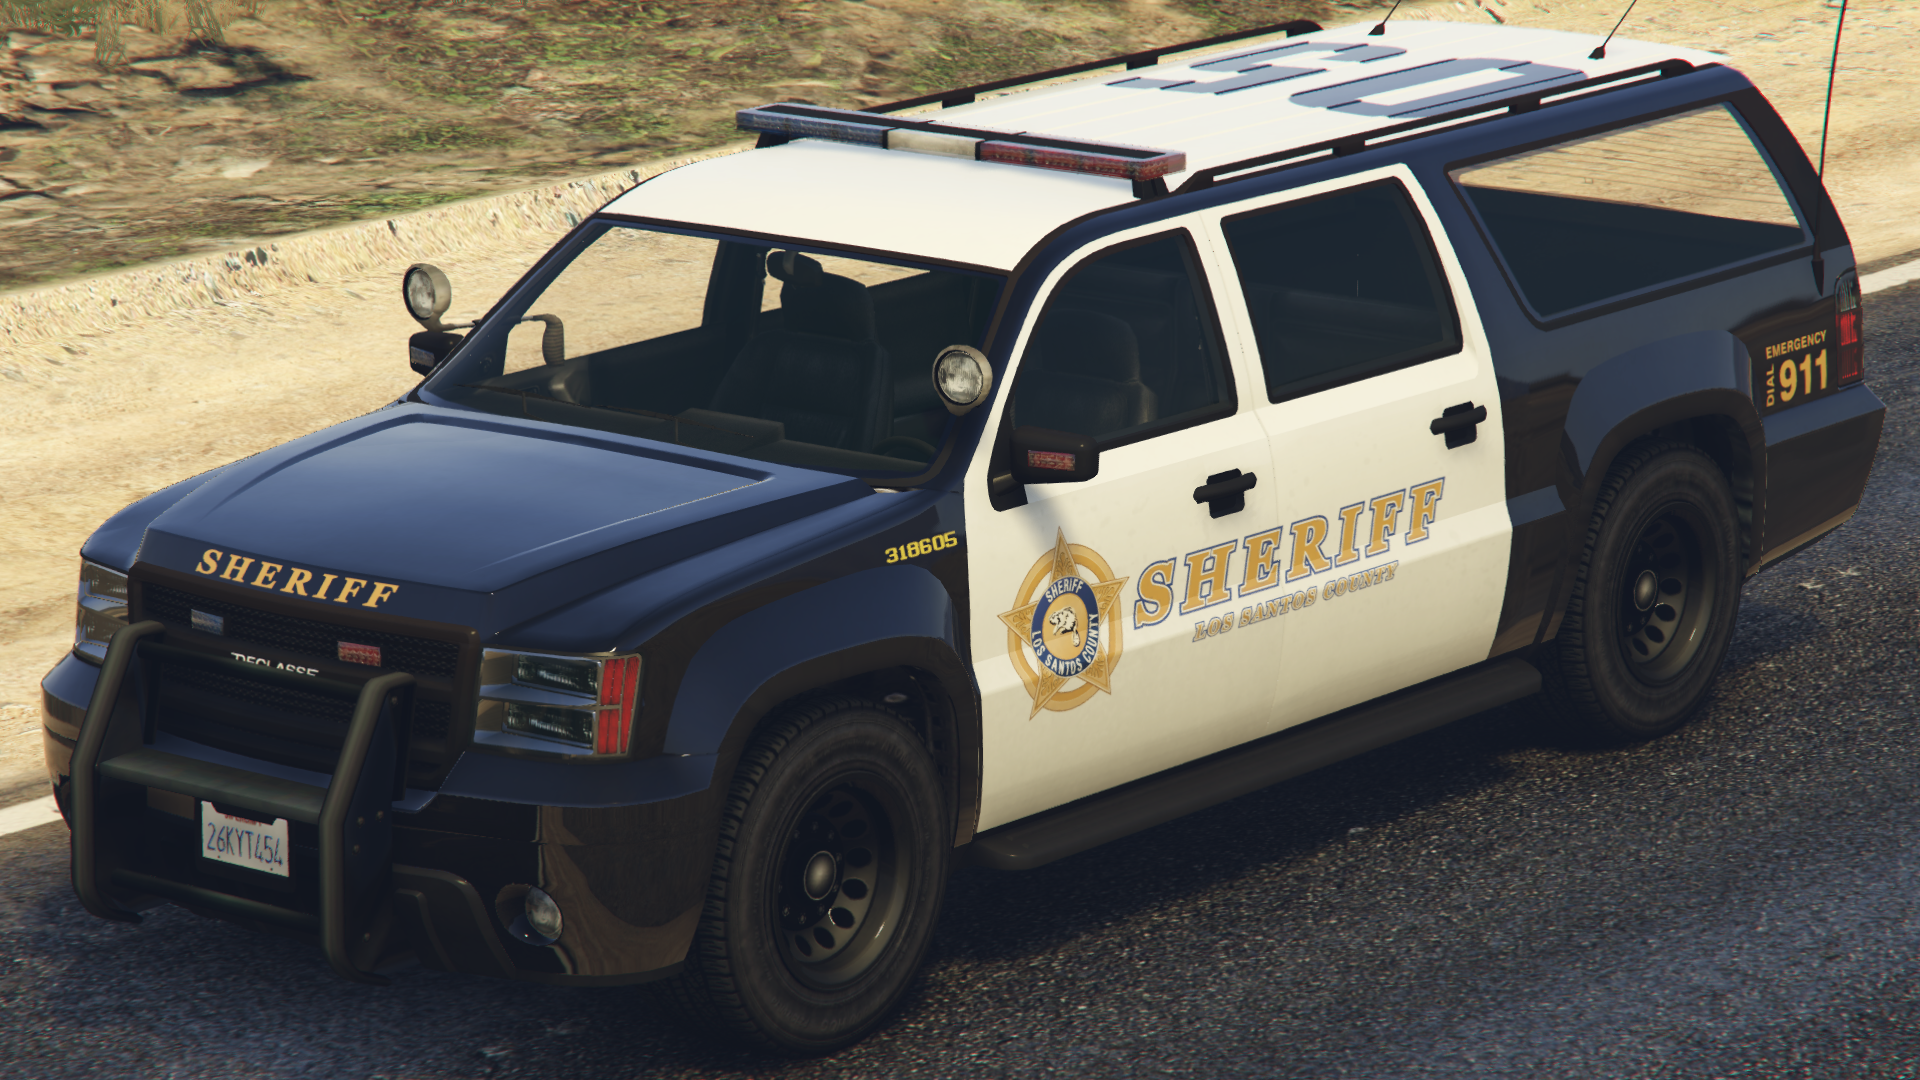 GUIDE] Police car mods: the whys and hows, and